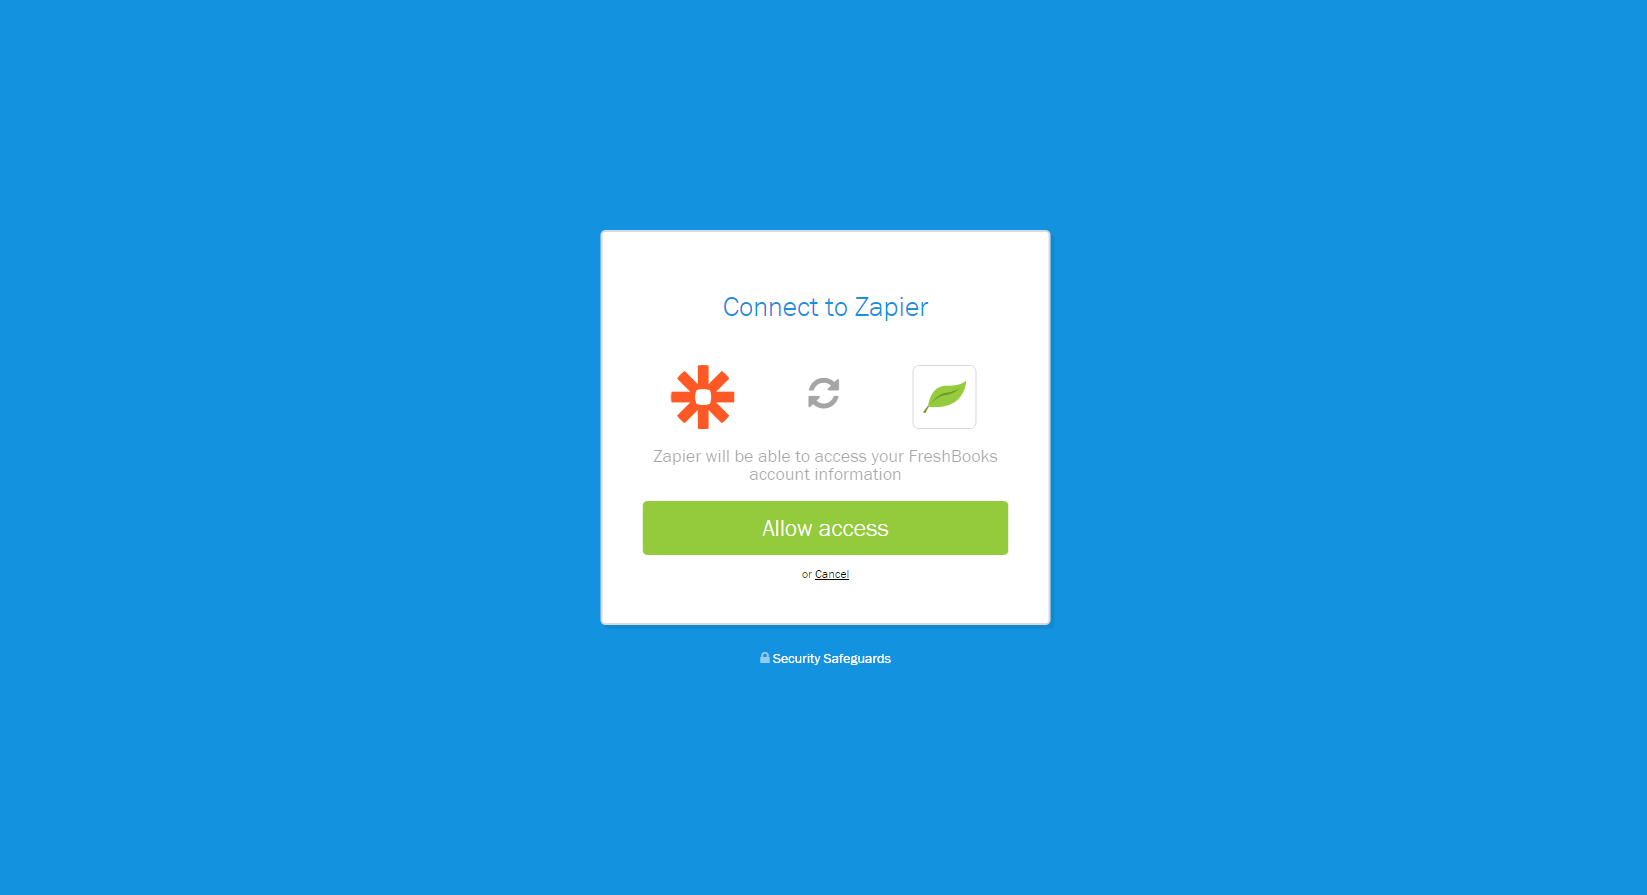 Authorize FreshBooks New on Zapier